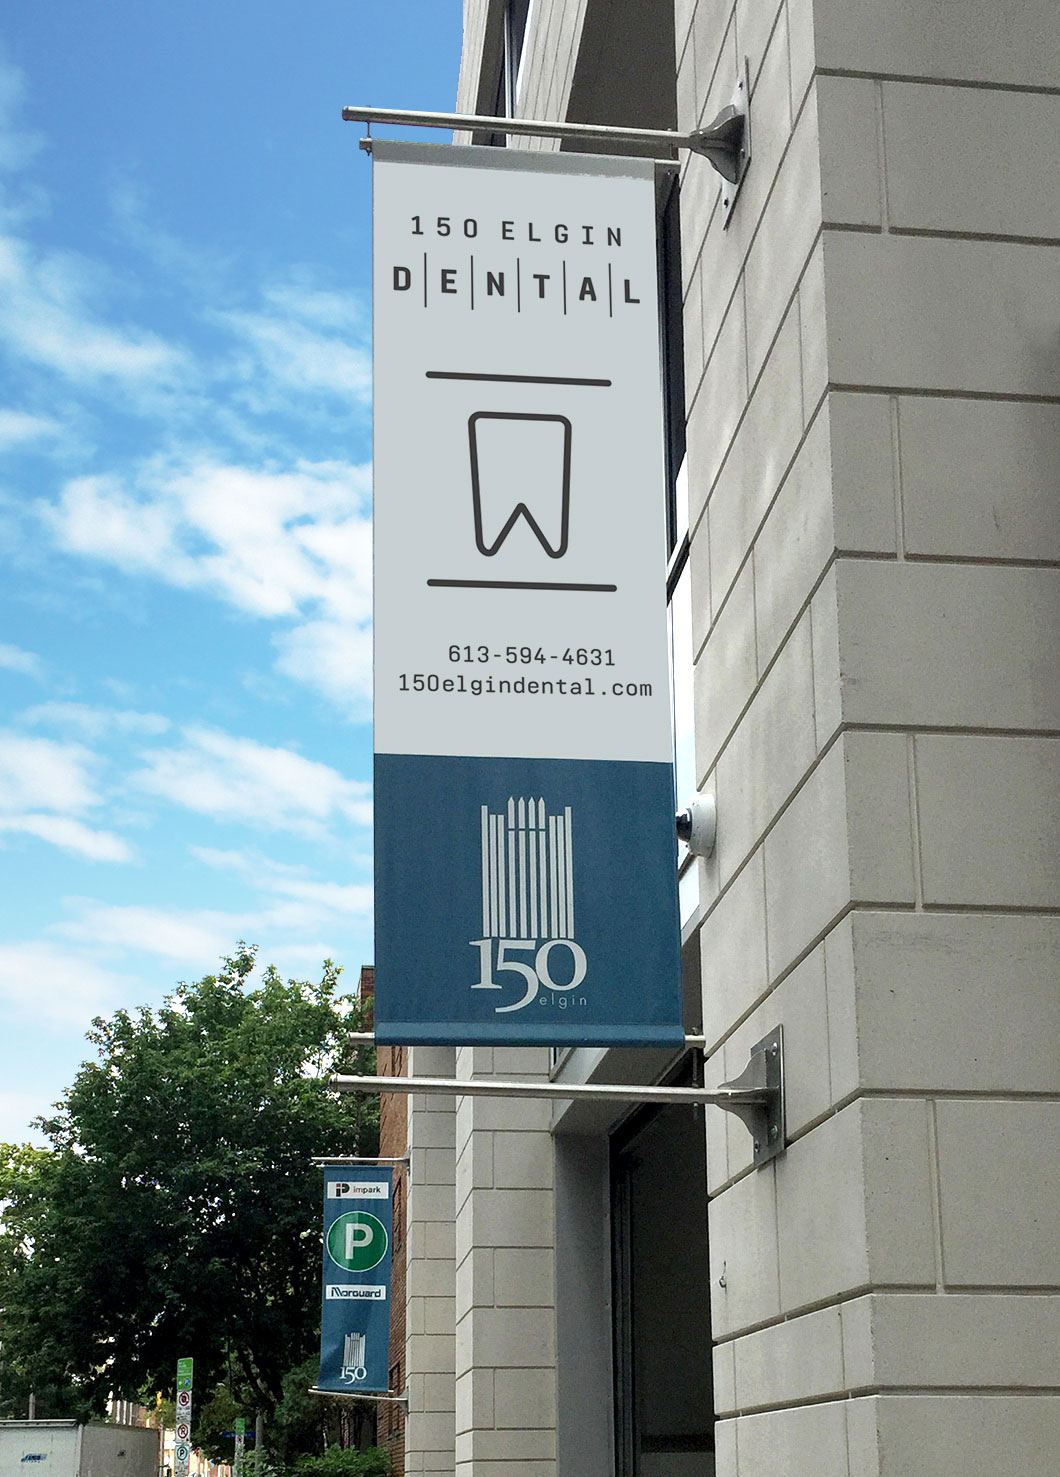 Banner design for 150 Elgin Dental by Ottawa graphic designer idApostle